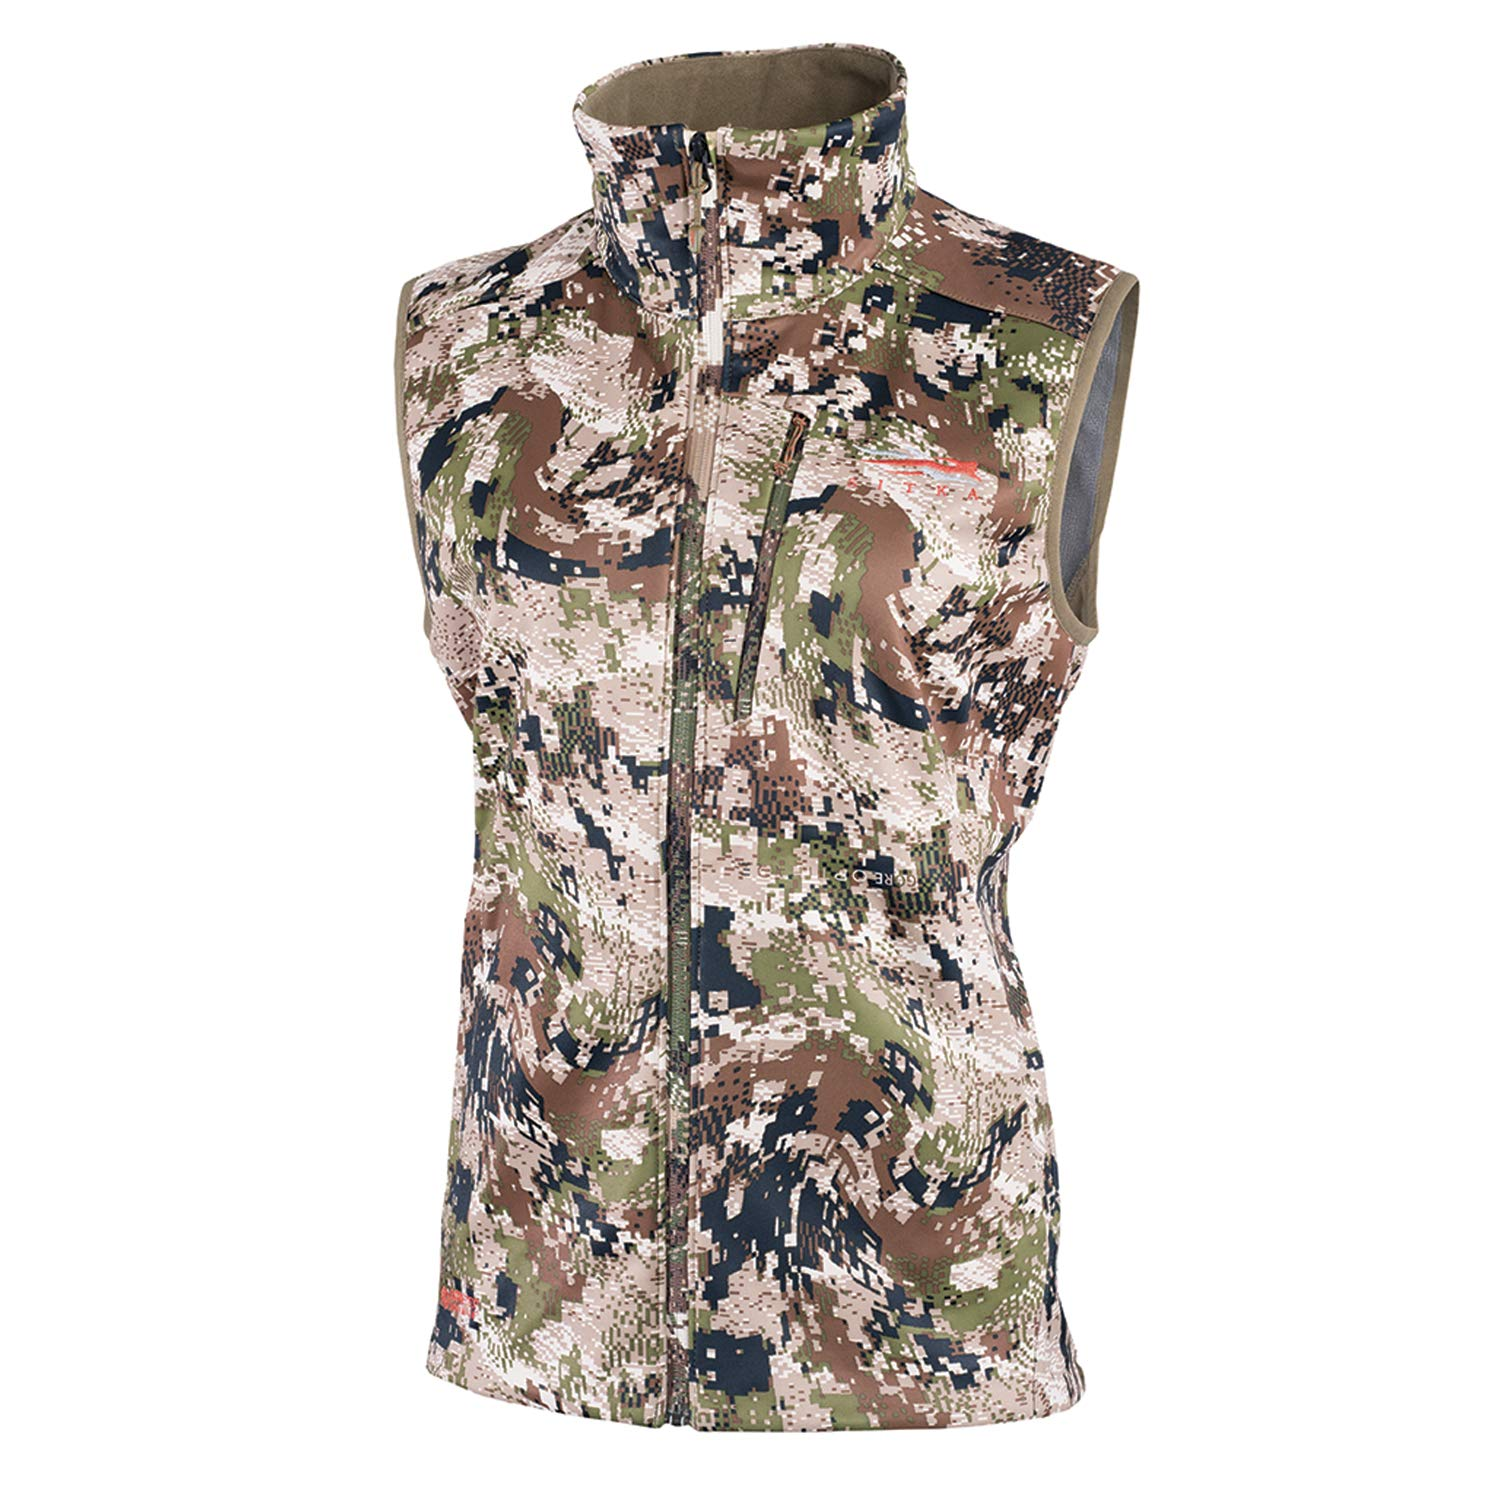 SITKA Gear New for 2019 Womens Jetstream Vest Optifade Subalpine Small by SITKA